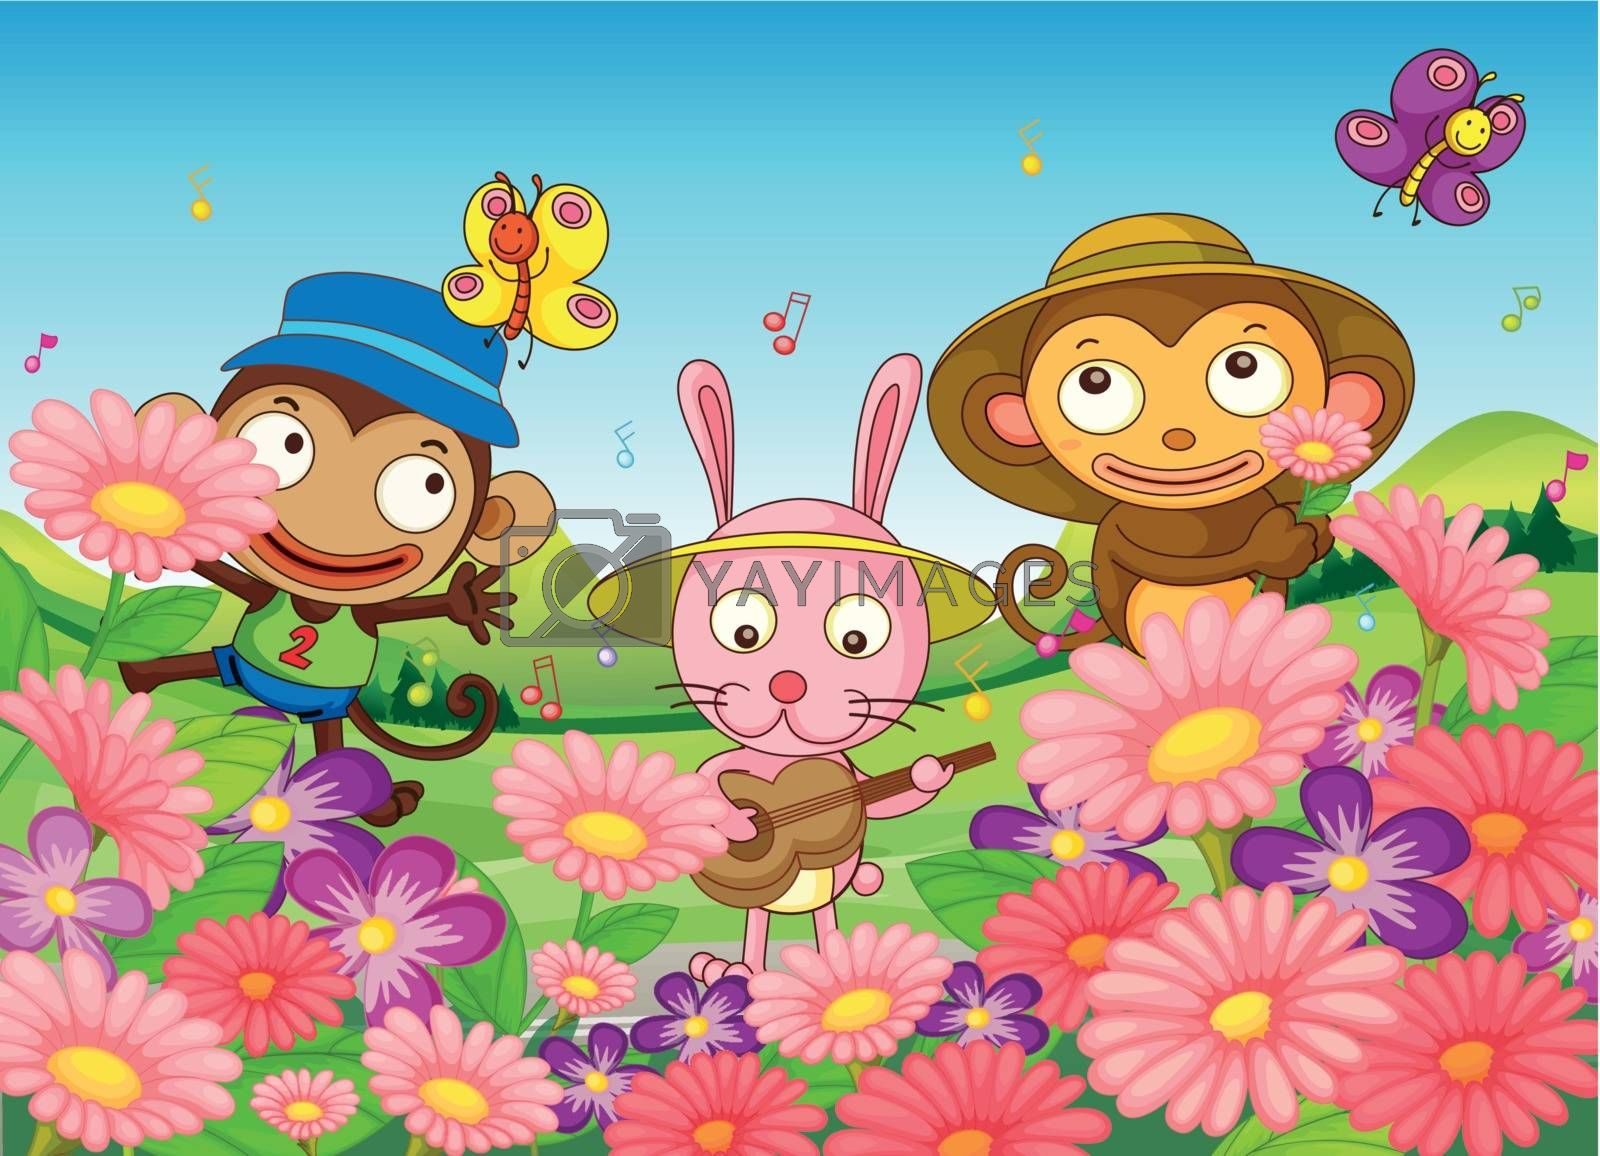 Illustration of the two monkeys and a bunny in the garden